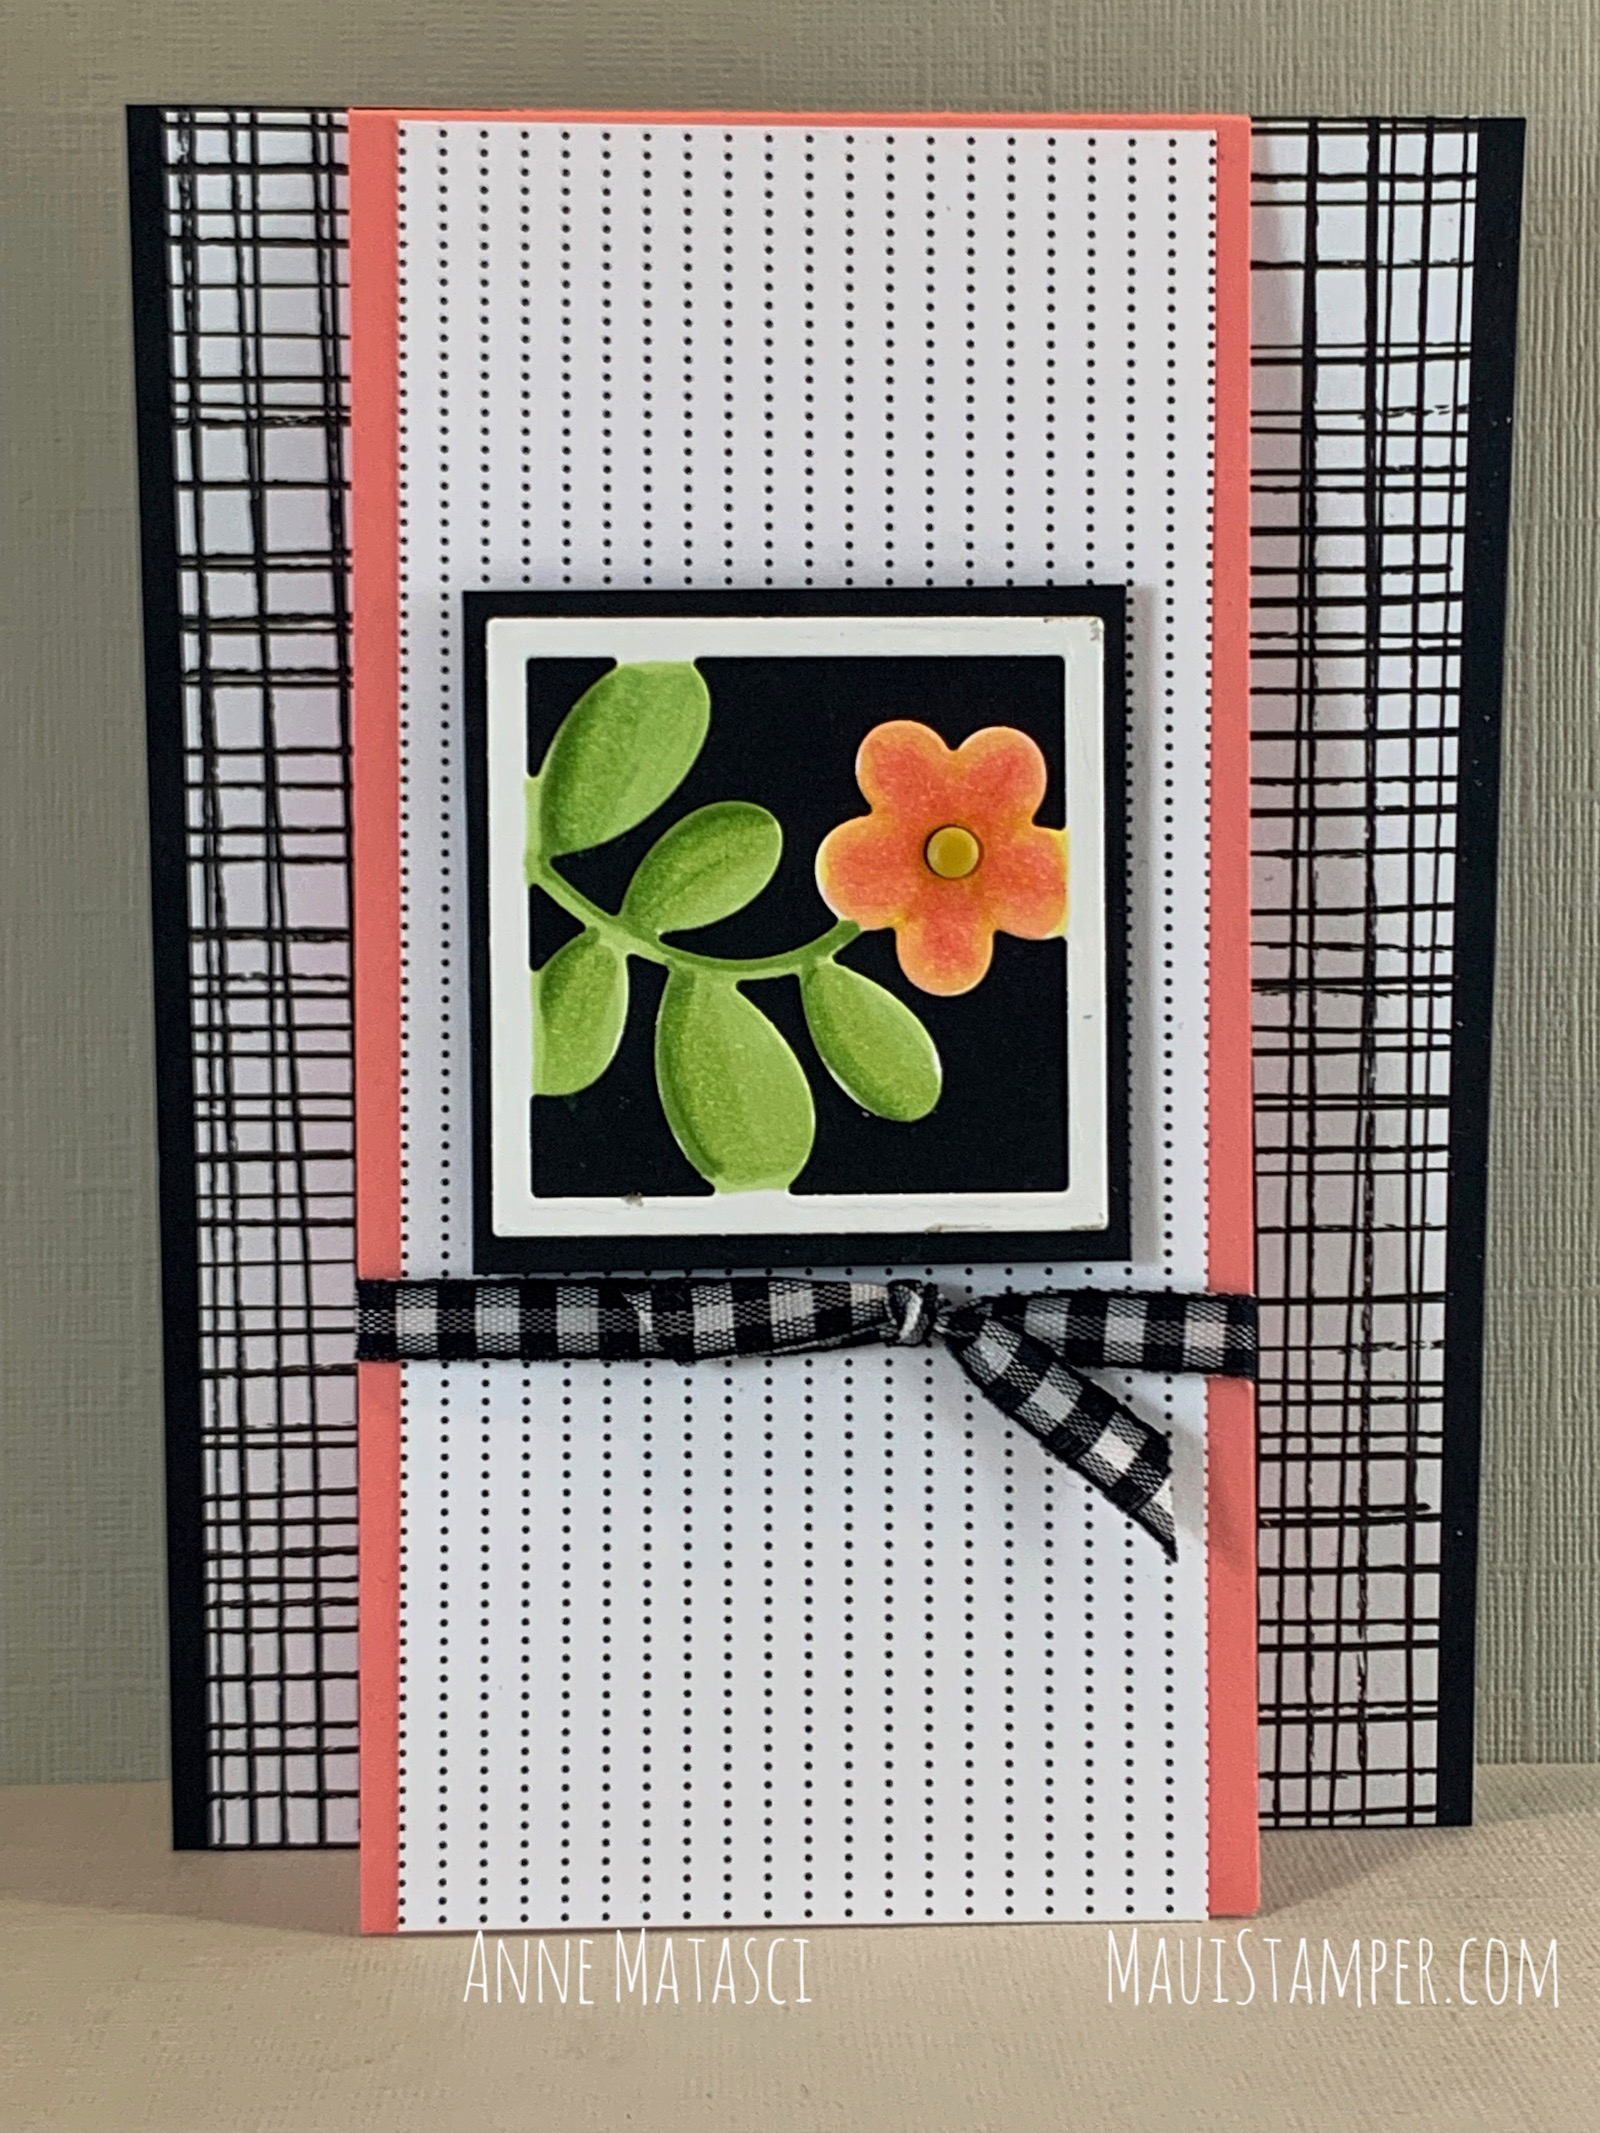 Maui Stamper Stampin Up Floral Frames Pattern Party fun fold handmade card